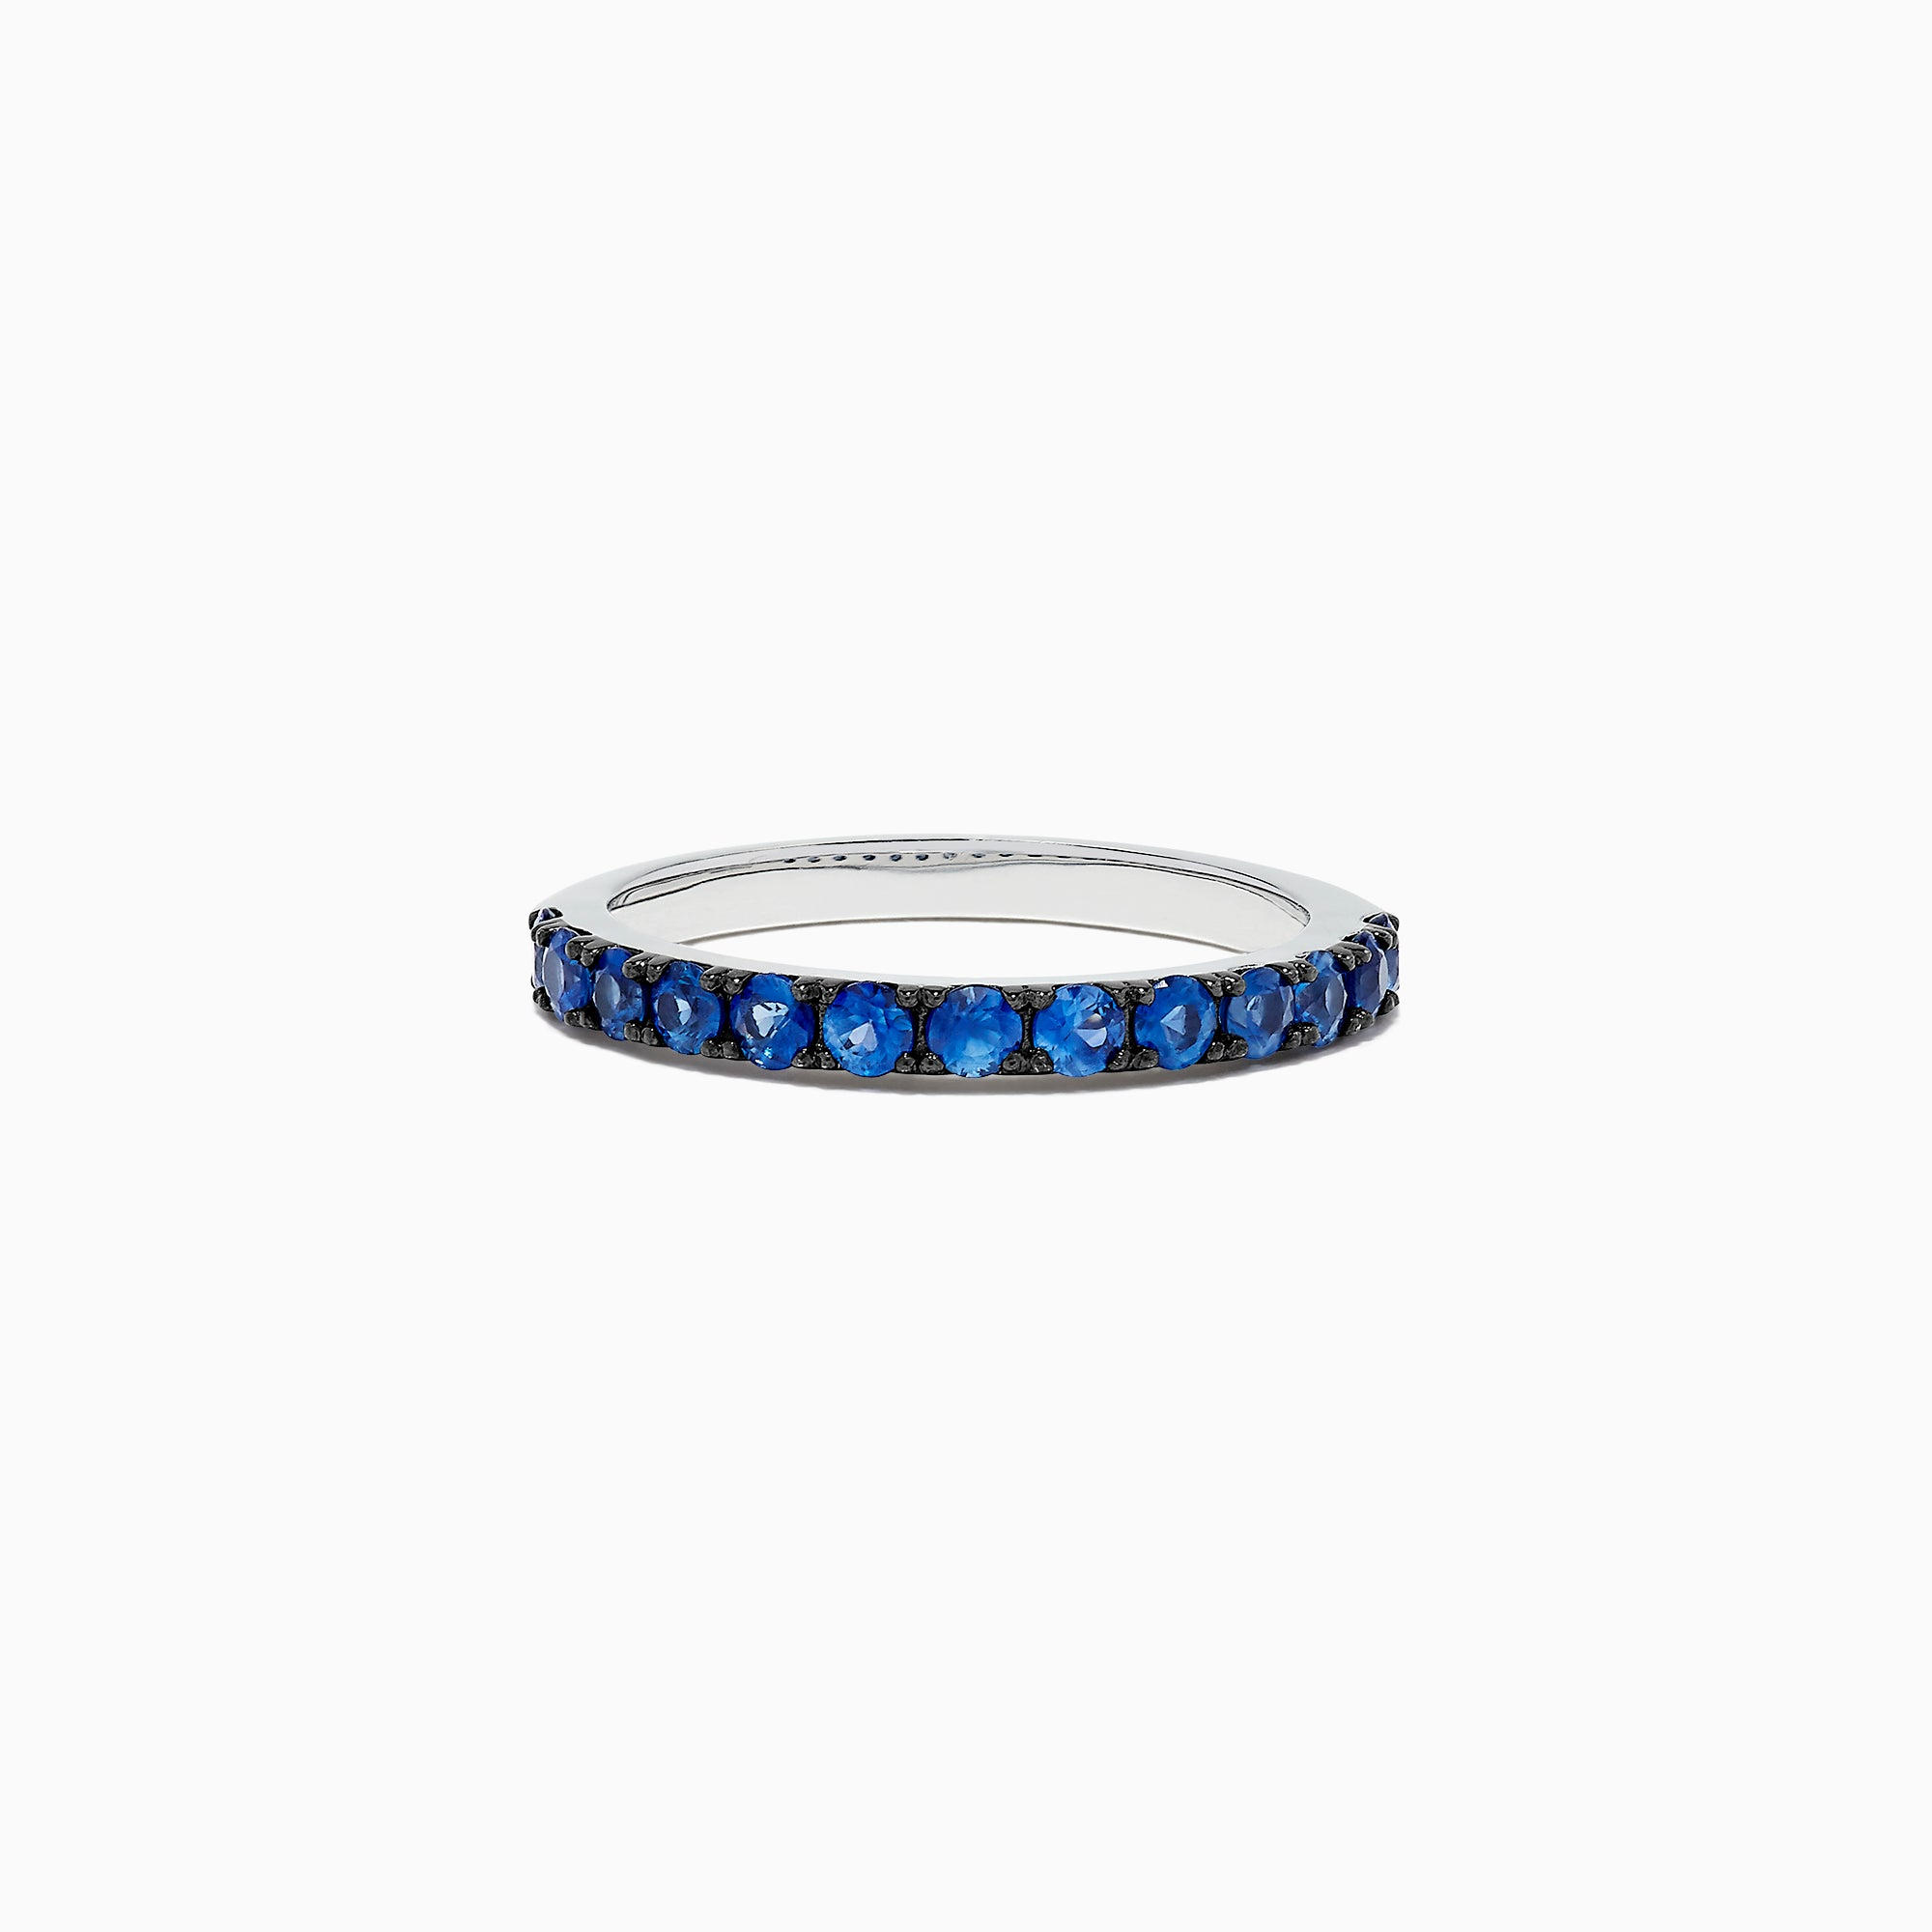 Effy 925 Sterling Silver Sapphire Band, 0.85 TCW